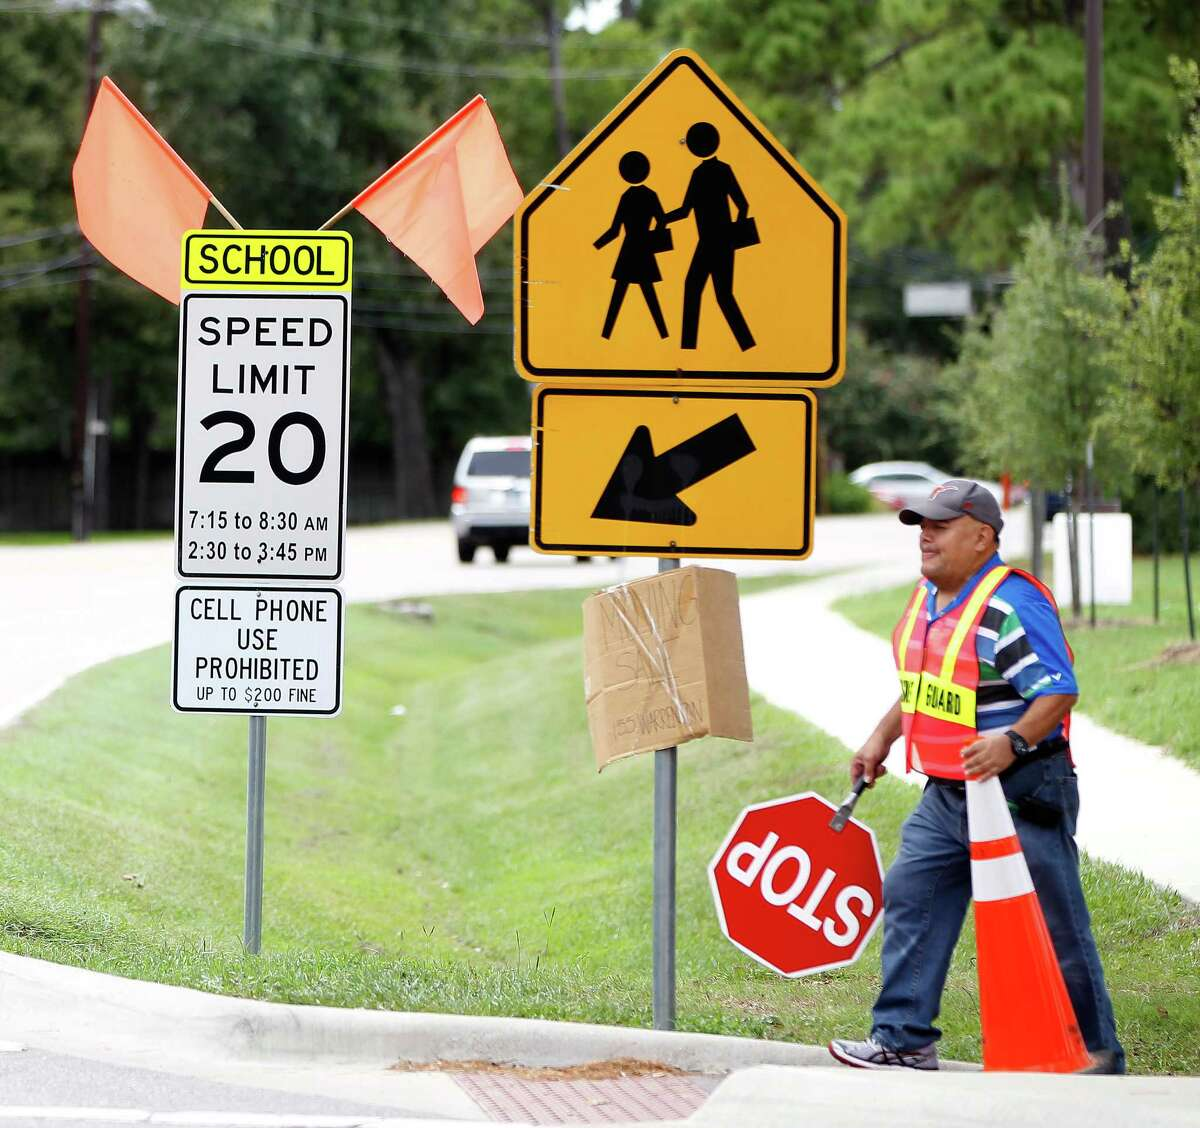 In Bunker Hill Village, crossing guard Jesus Ochoa helps children at HISD's Frostwood Elementary navigate Memorial Drive where motorists are warned not to use cellphones.